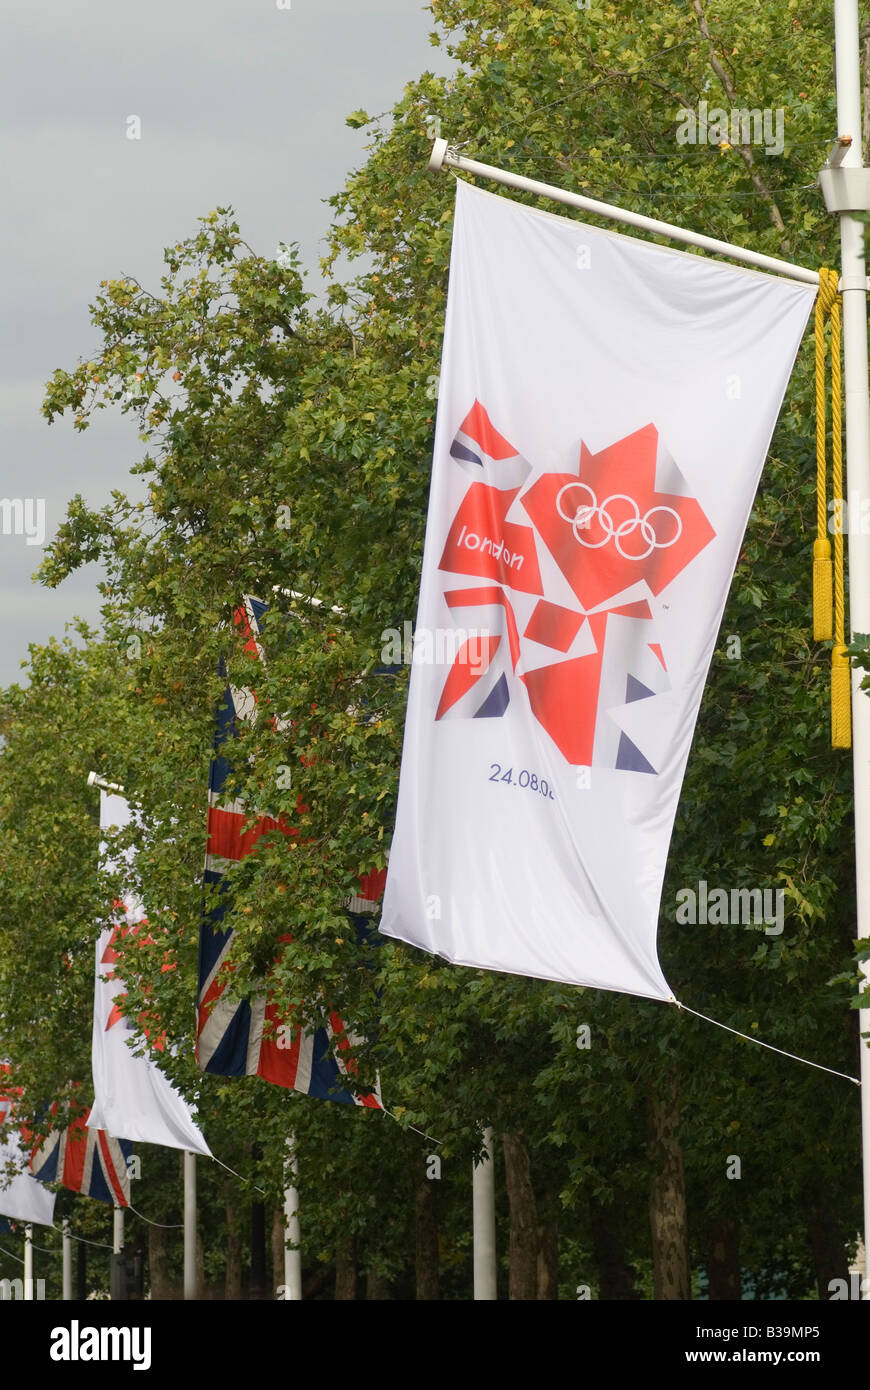 2012 London Oylmpic Games flag and Union Jack flag hanging in the Mall London England HOMER SYKES - Stock Image